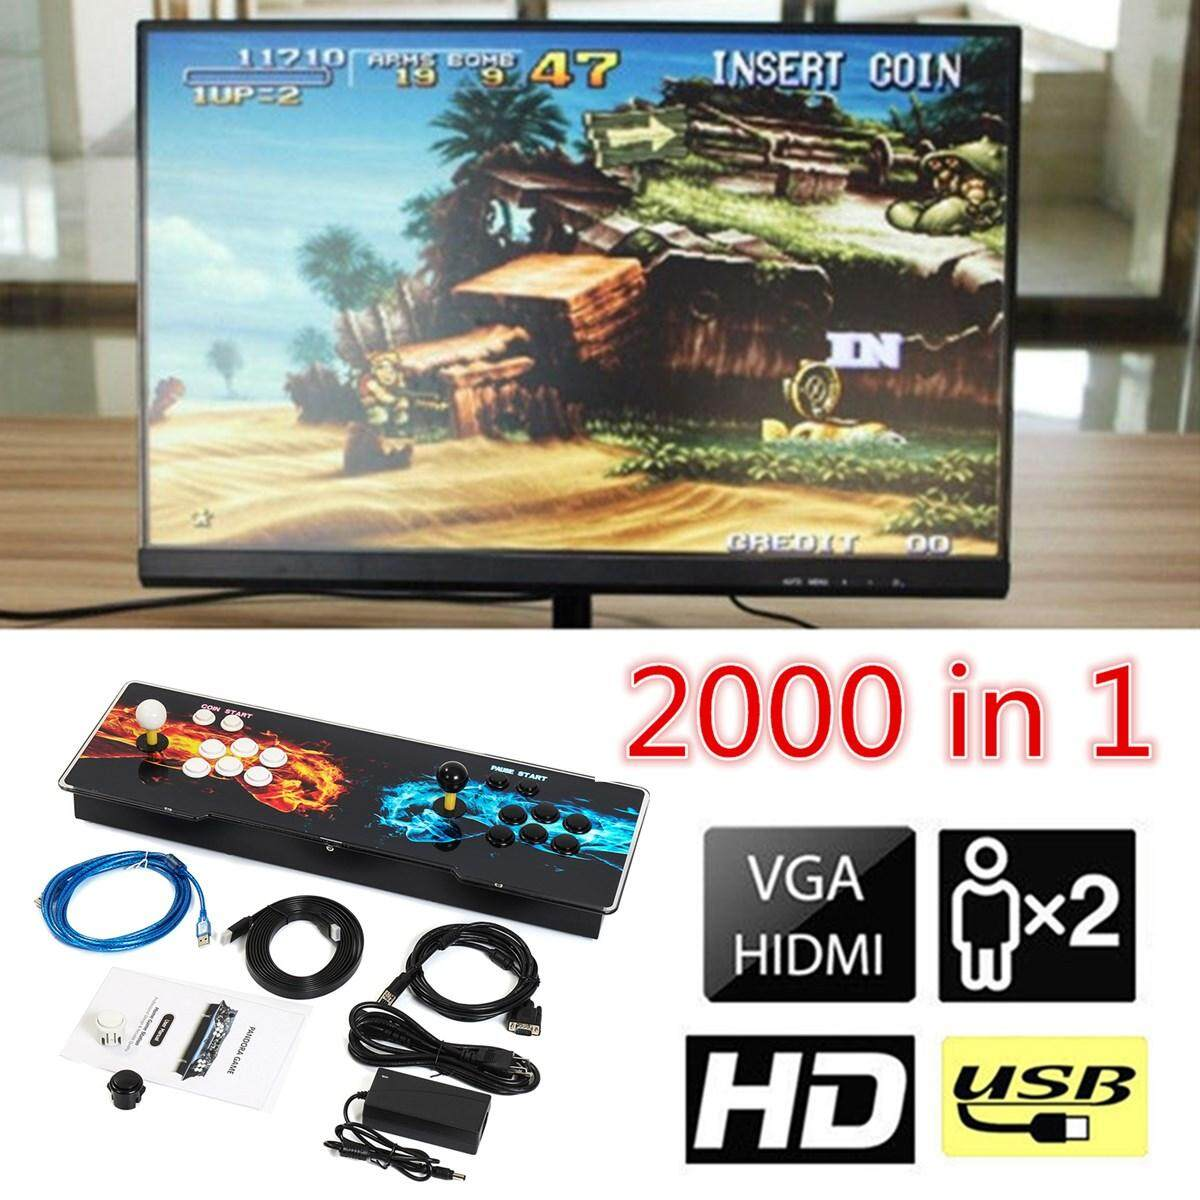 Newest 2000 In 1 Pandoras Box Hdmi Multiplayer Arcade Home Video Game Console By Glimmer.